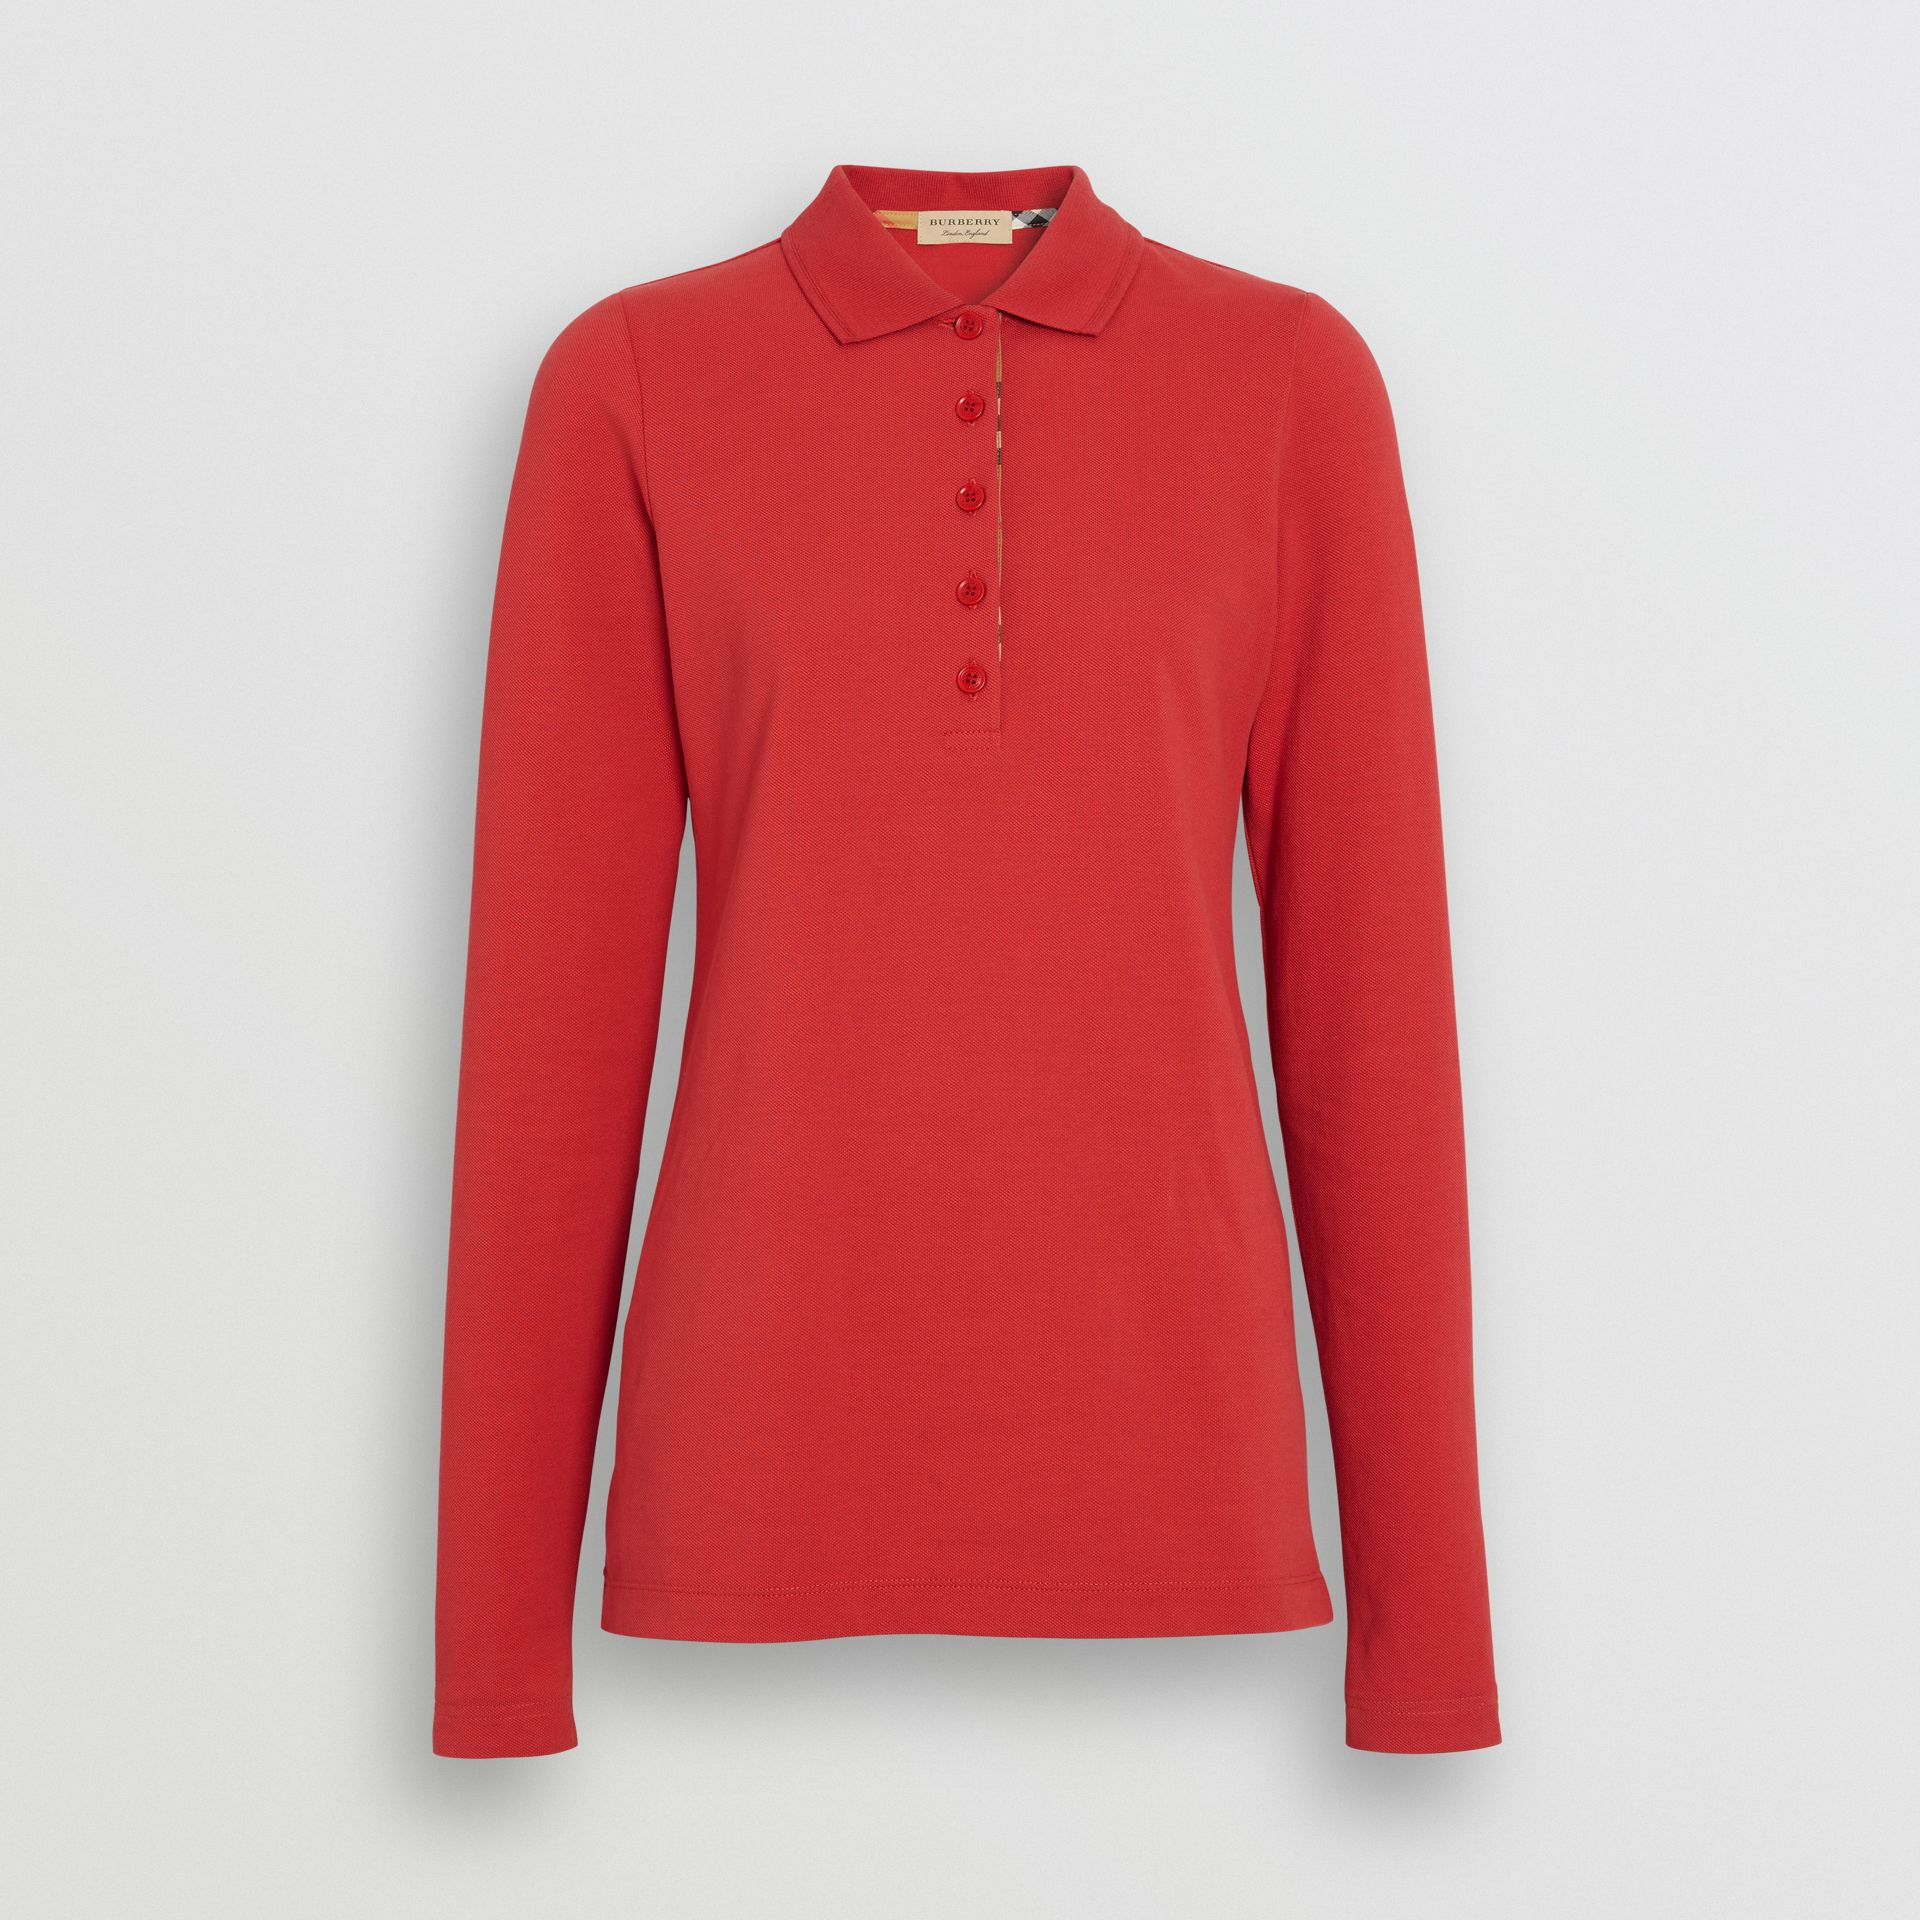 Long-sleeve Check Placket Cotton Piqué Polo Shirt in Bright Red - Women | Burberry Singapore - gallery image 3